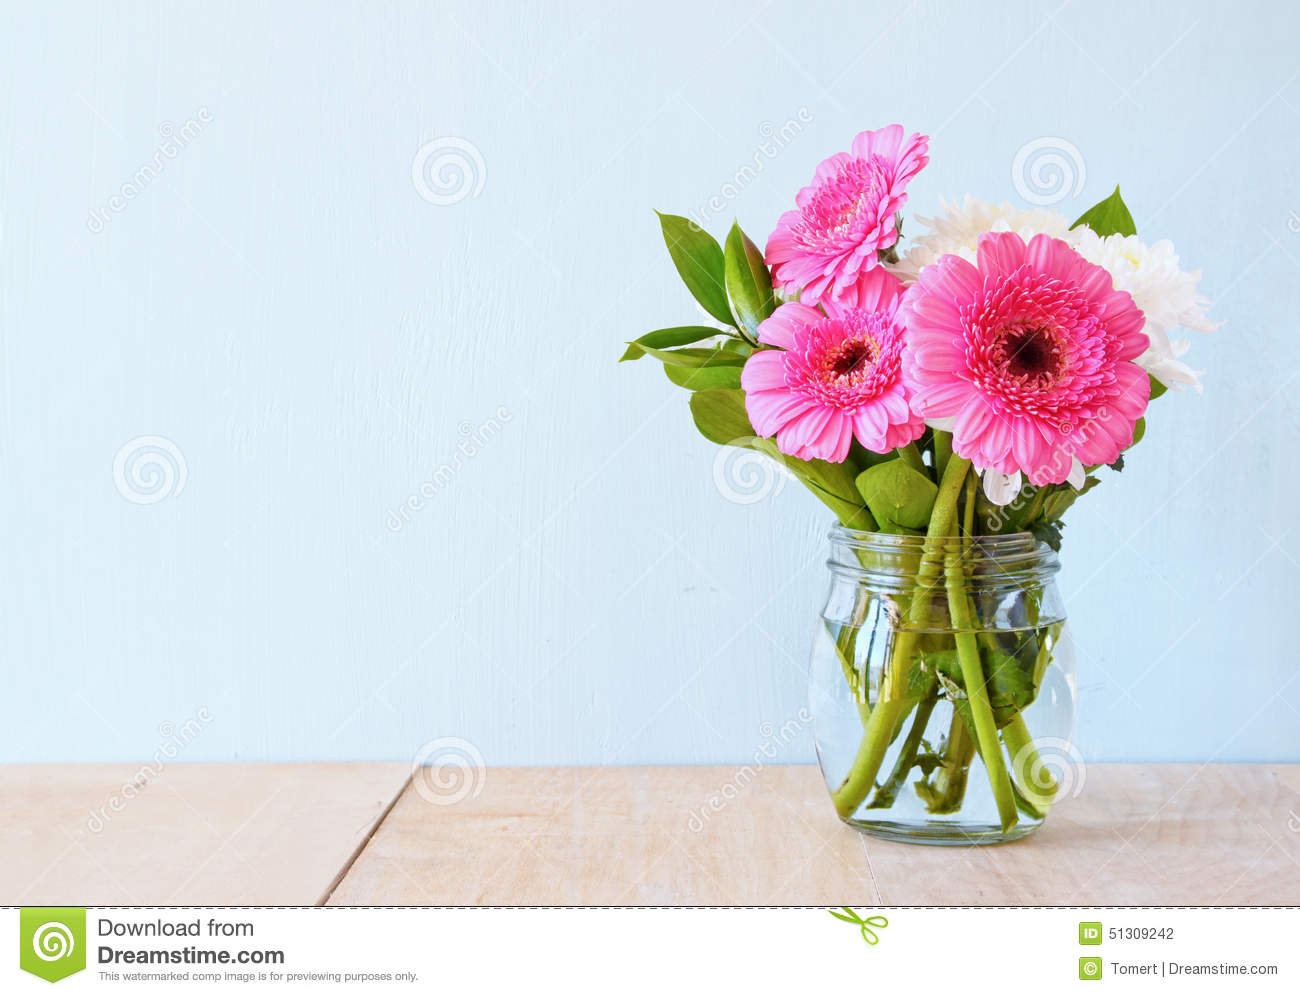 Summer bouquet of flowers on the wooden table with mint background summer bouquet of flowers on the wooden table with mint background vintage filtered image izmirmasajfo